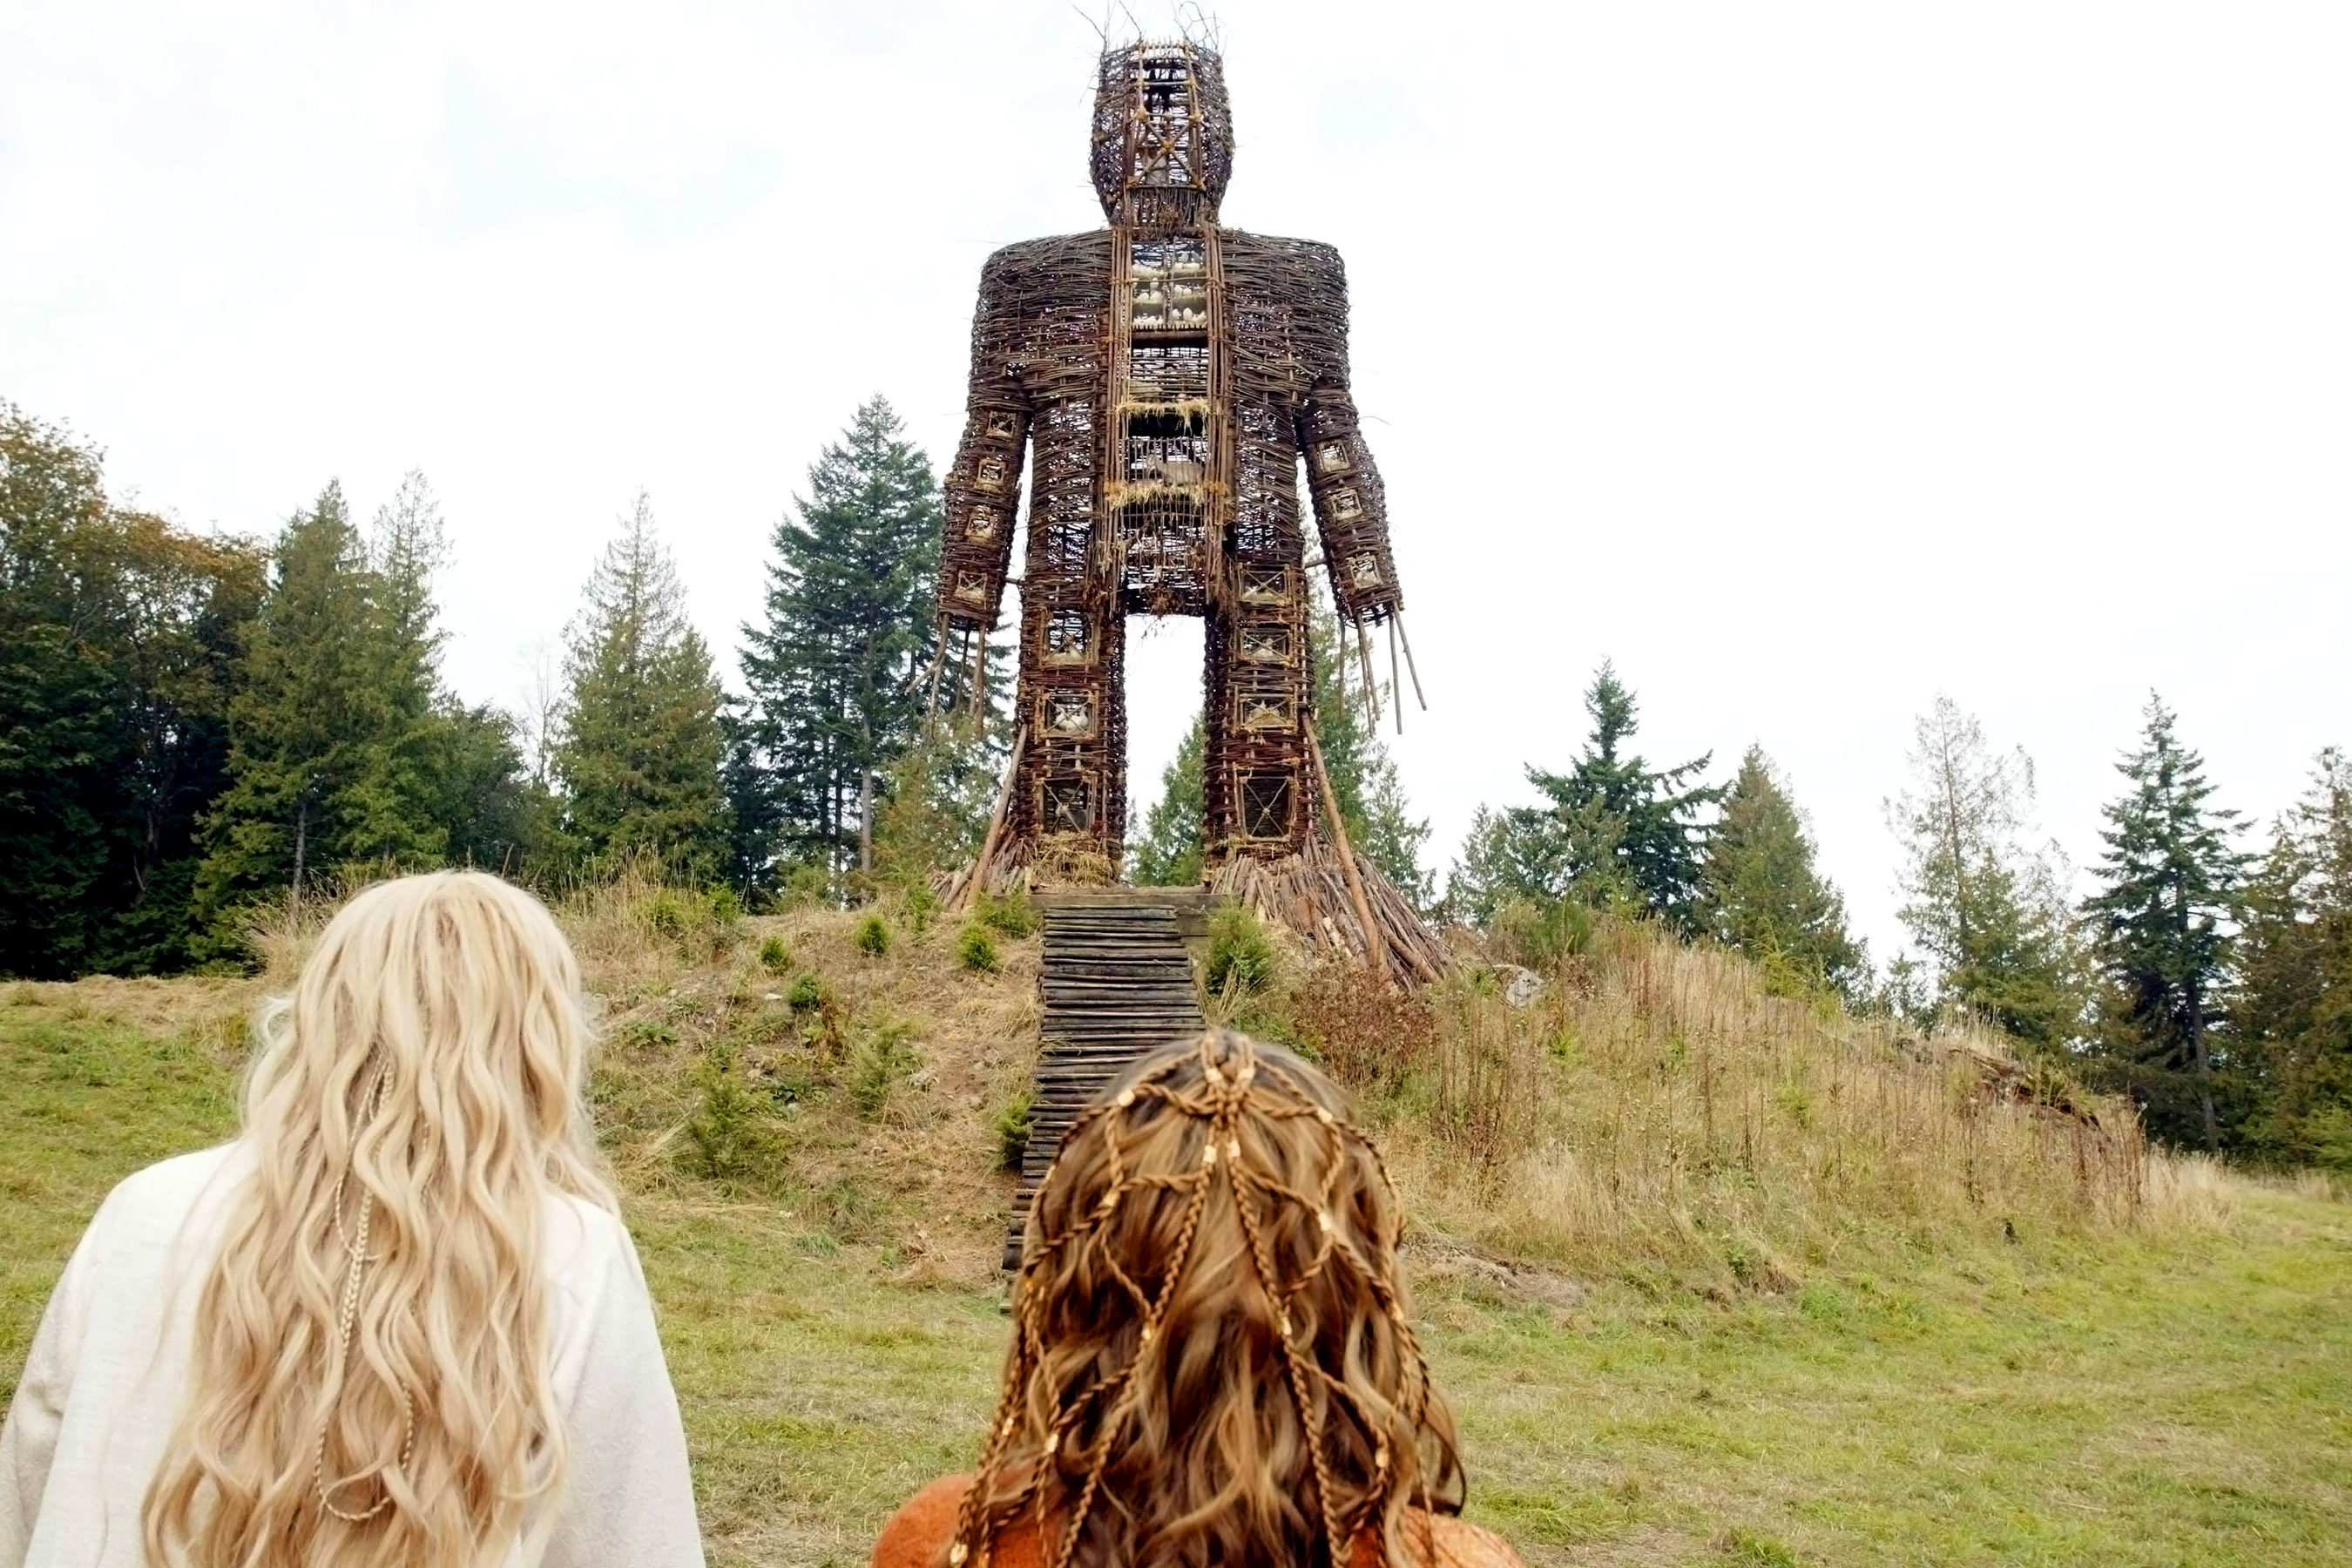 The Wicker Man prepared for sacrifice in The Wicker Man (2006)